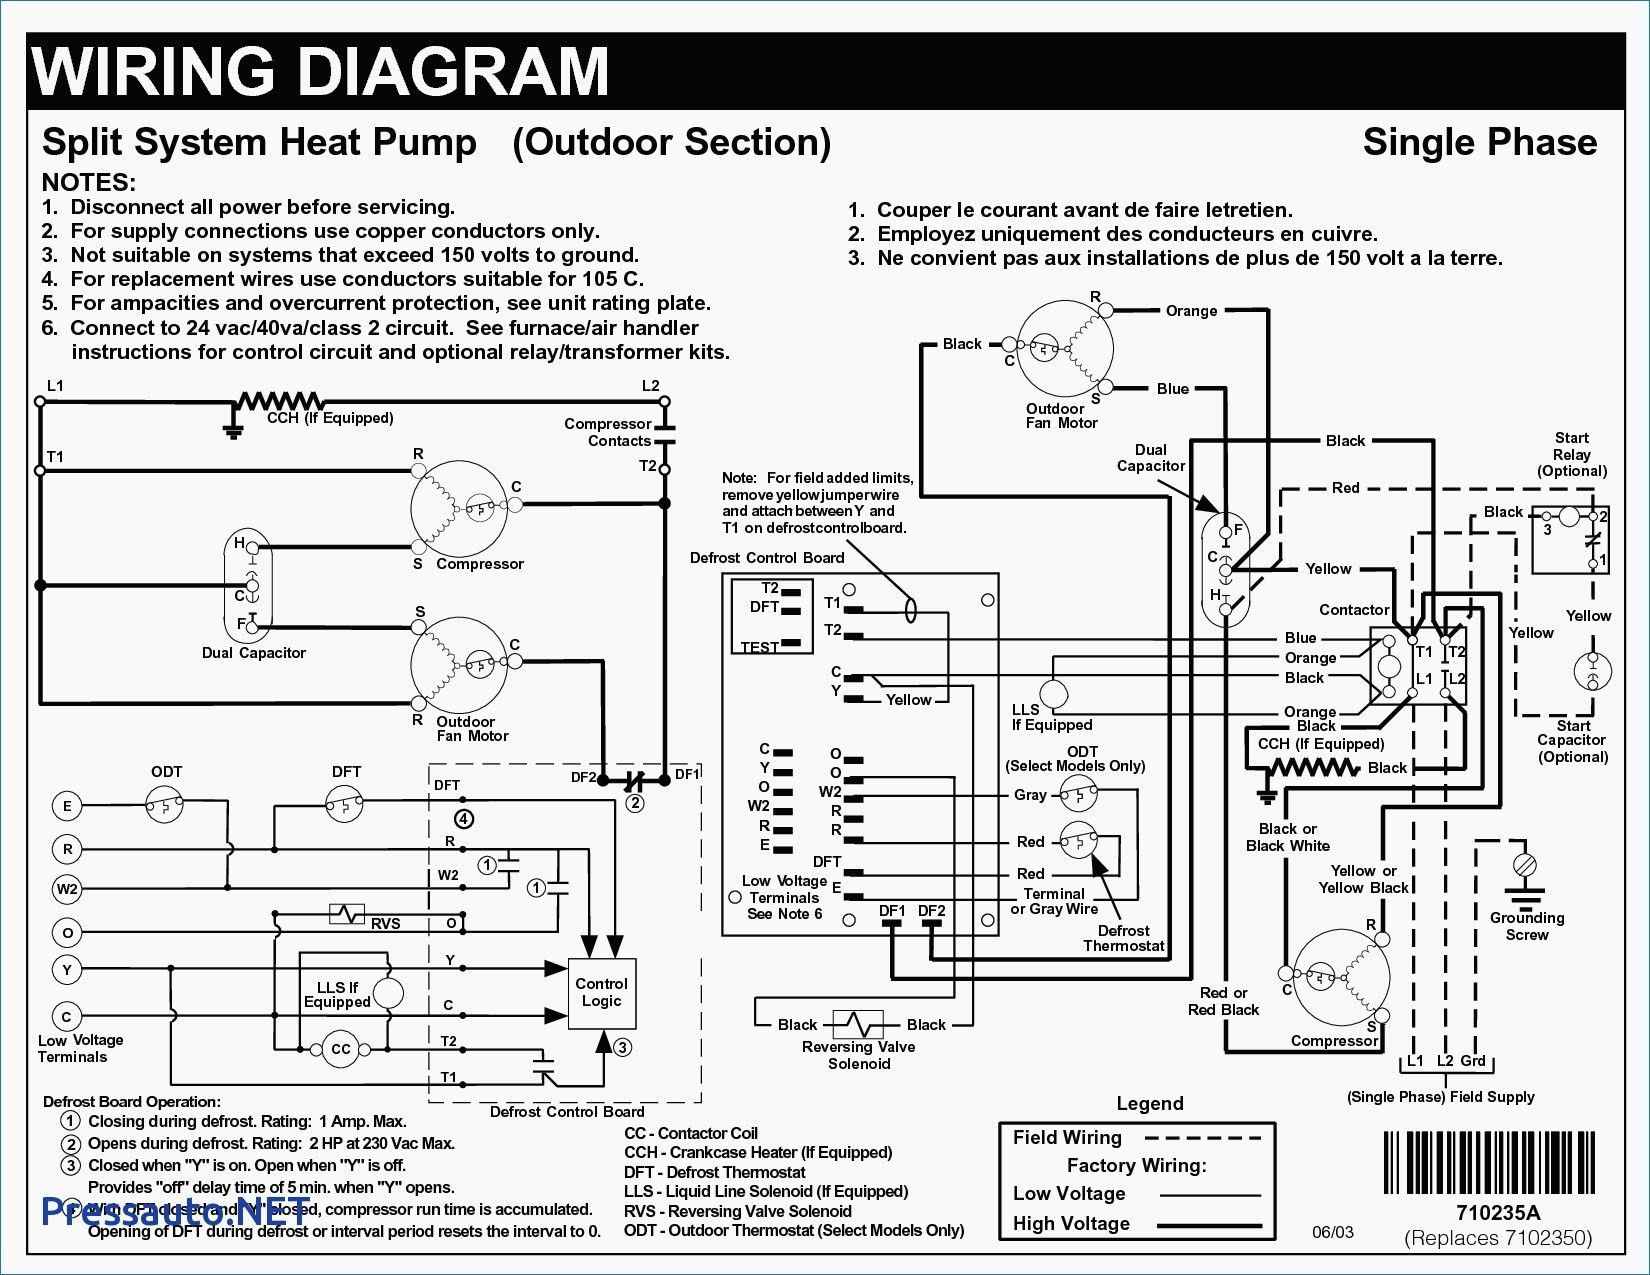 Trane Heat Pumps Wiring Diagram from i.pinimg.com